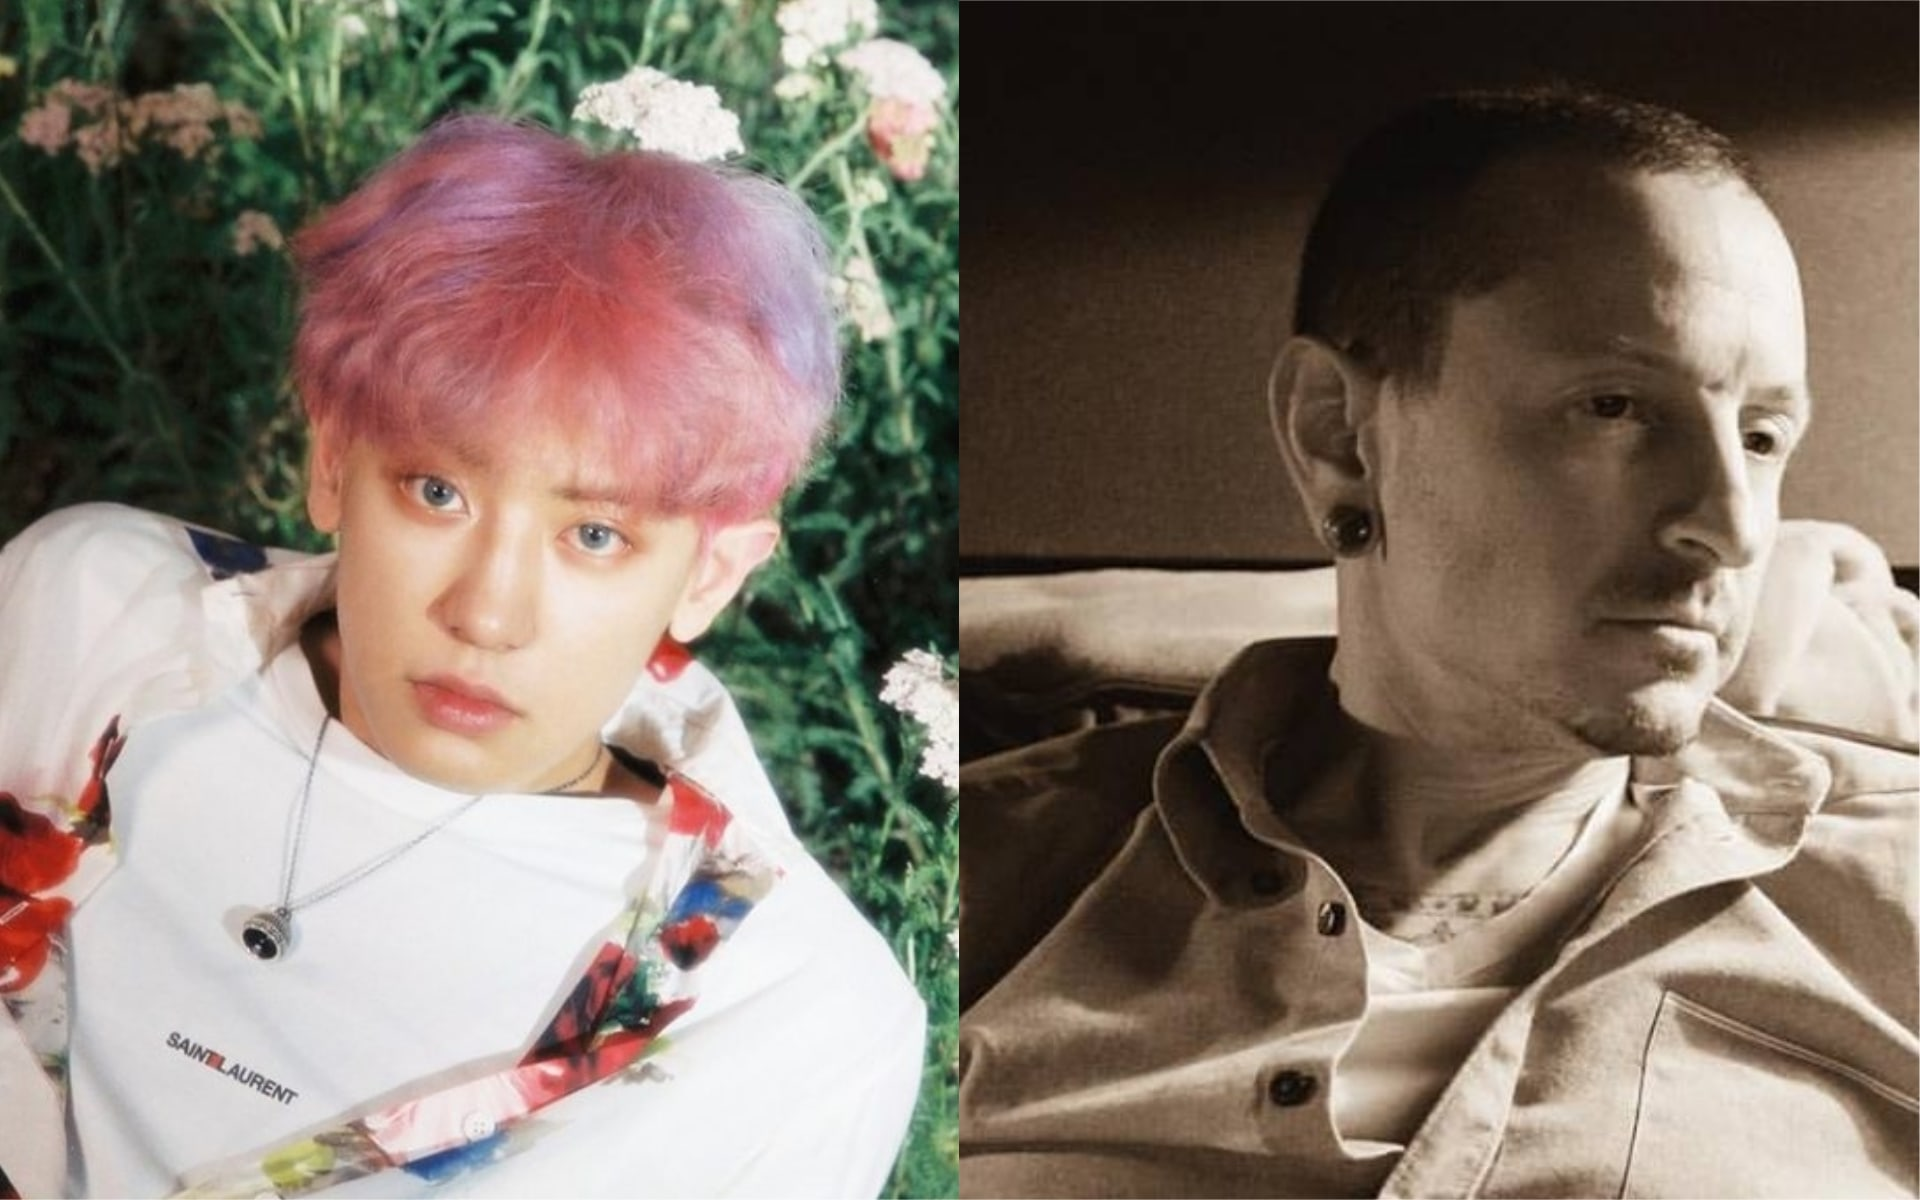 EXOs Chanyeol Shares Linkin Park Cover In Memory Of Chester Bennington, And New Beautiful Cover